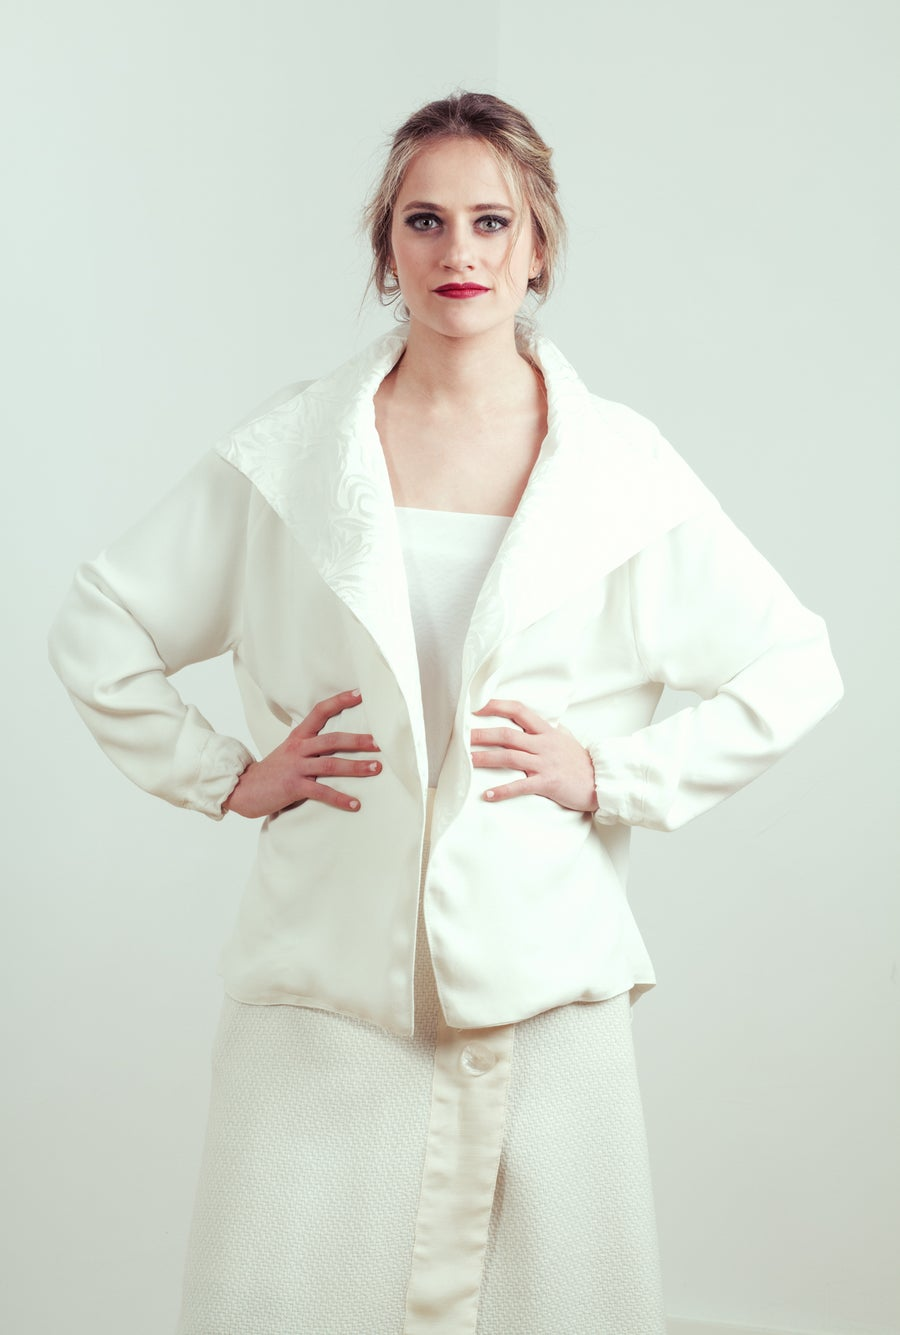 Image of  Bride Jacket Personalizada